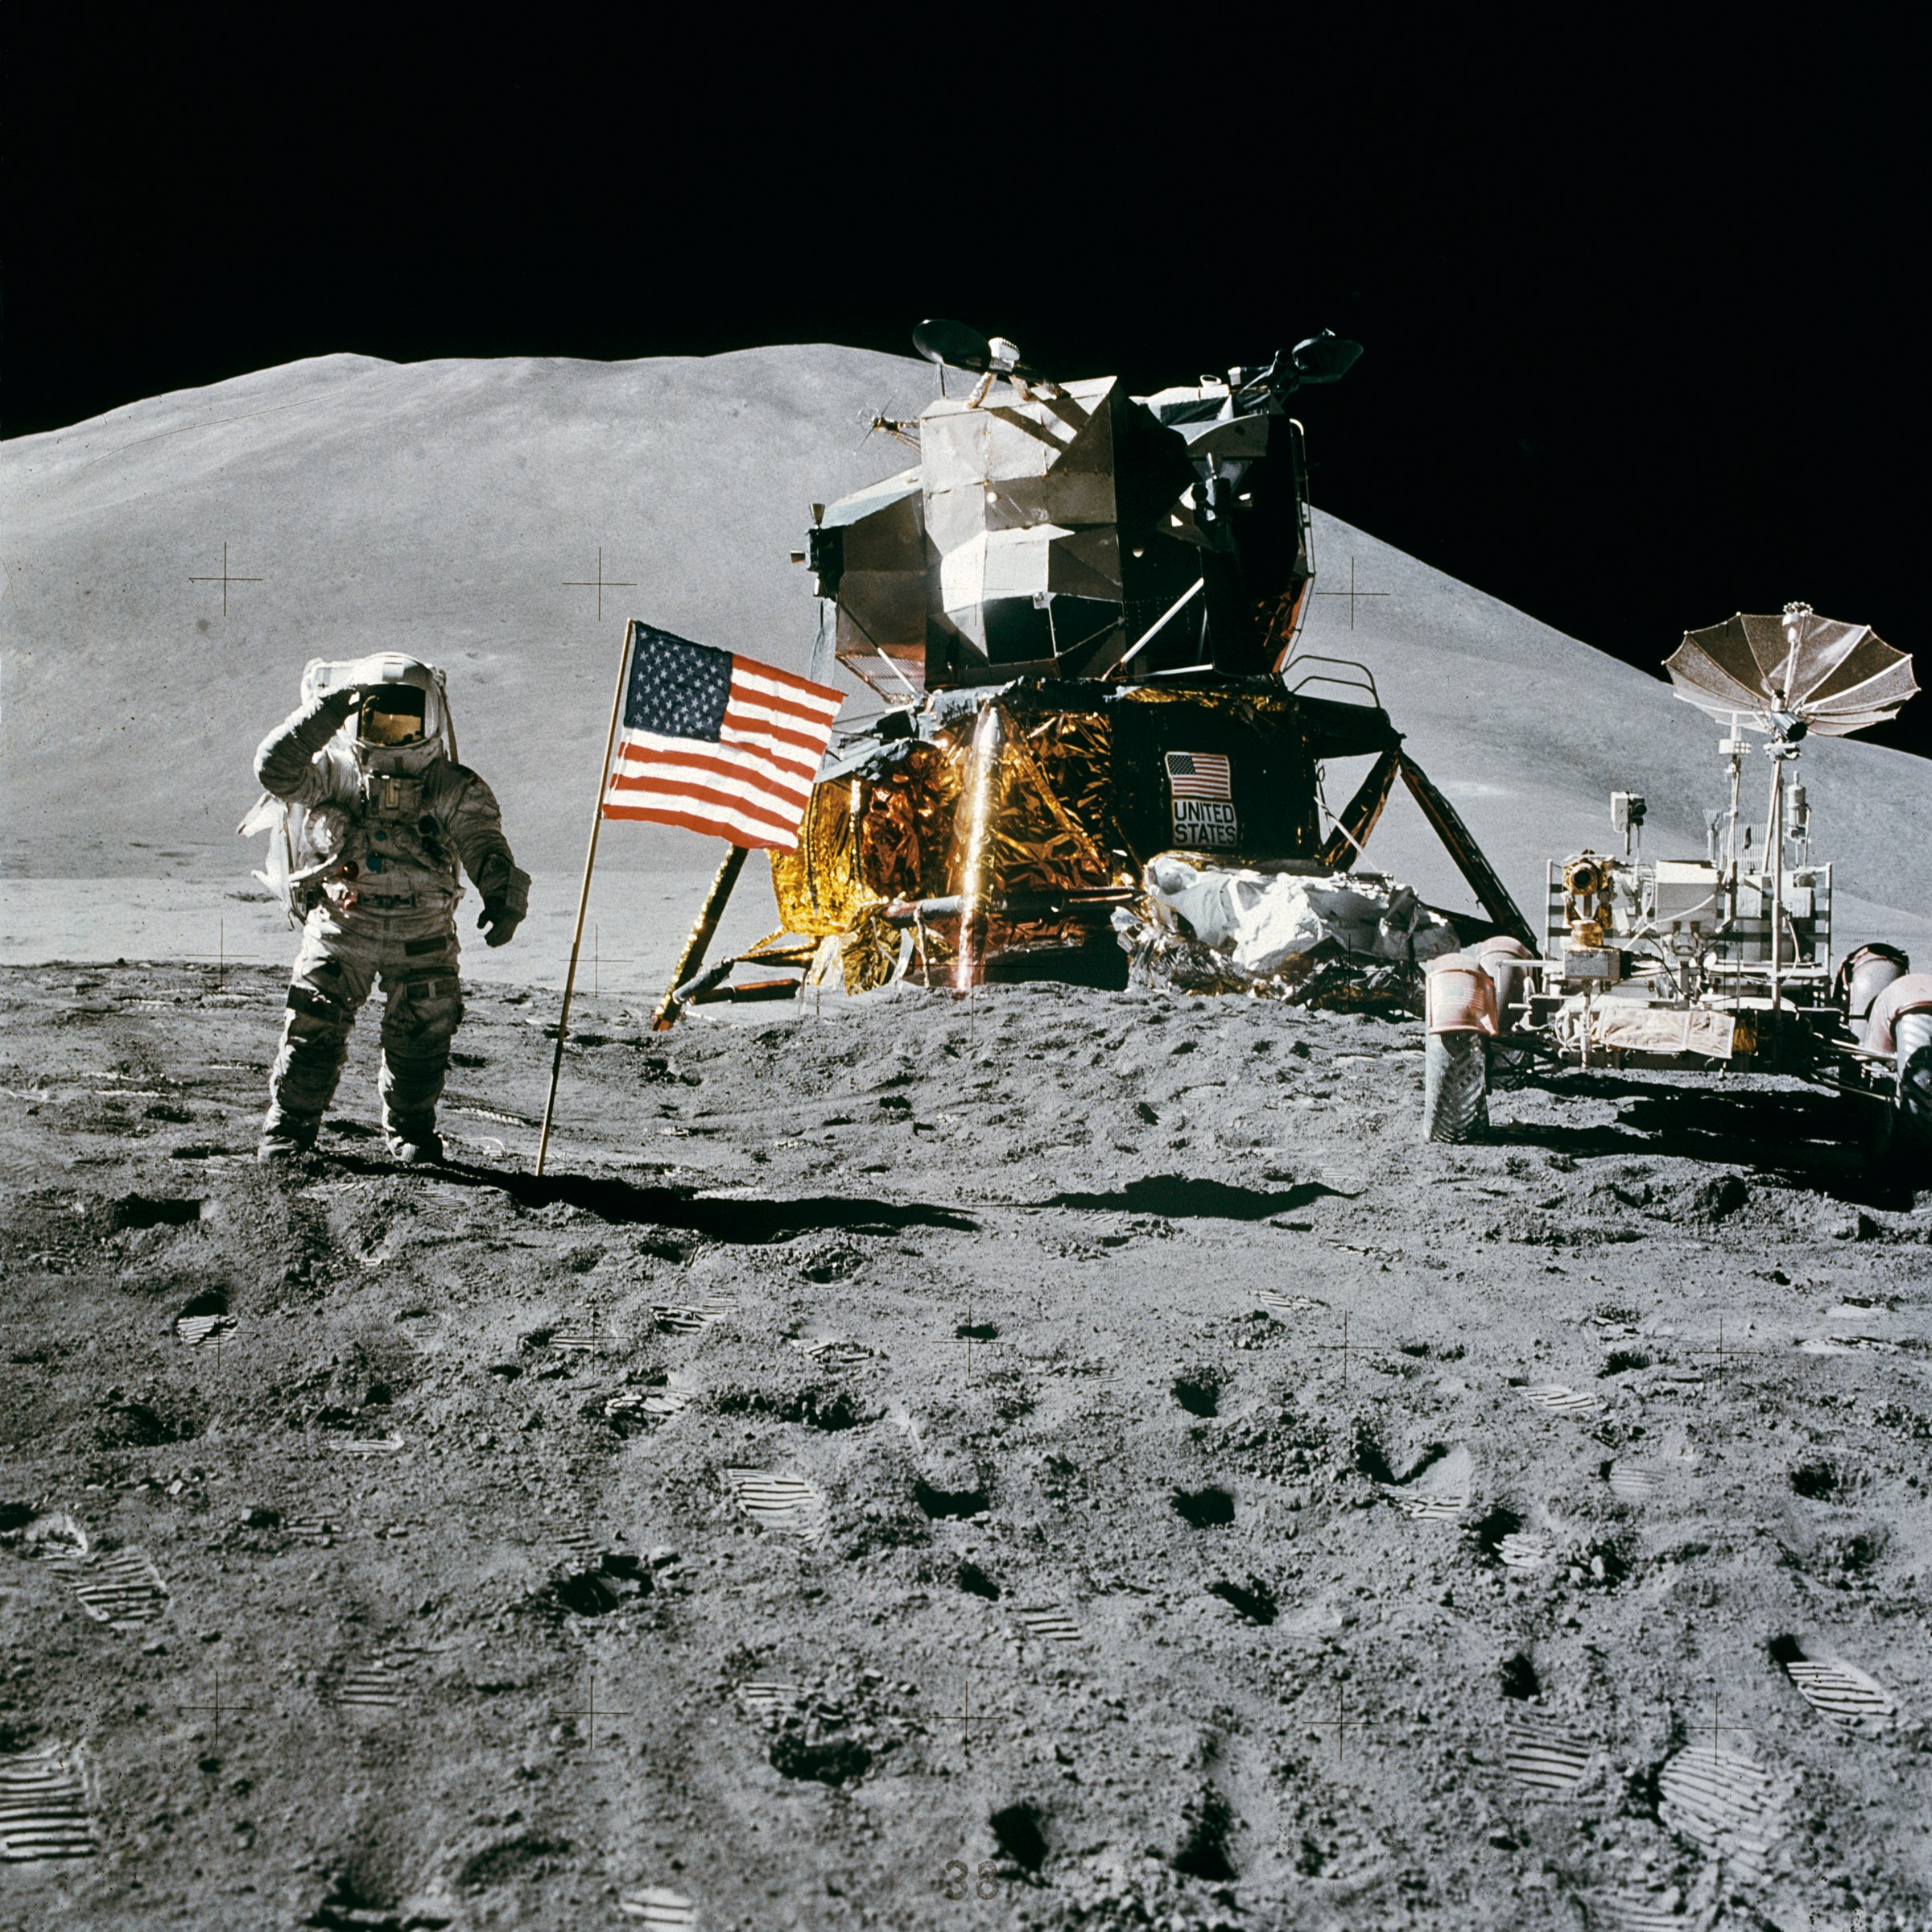 File:Apollo 15 flag, rover, LM, Irwin.jpg - Wikipedia